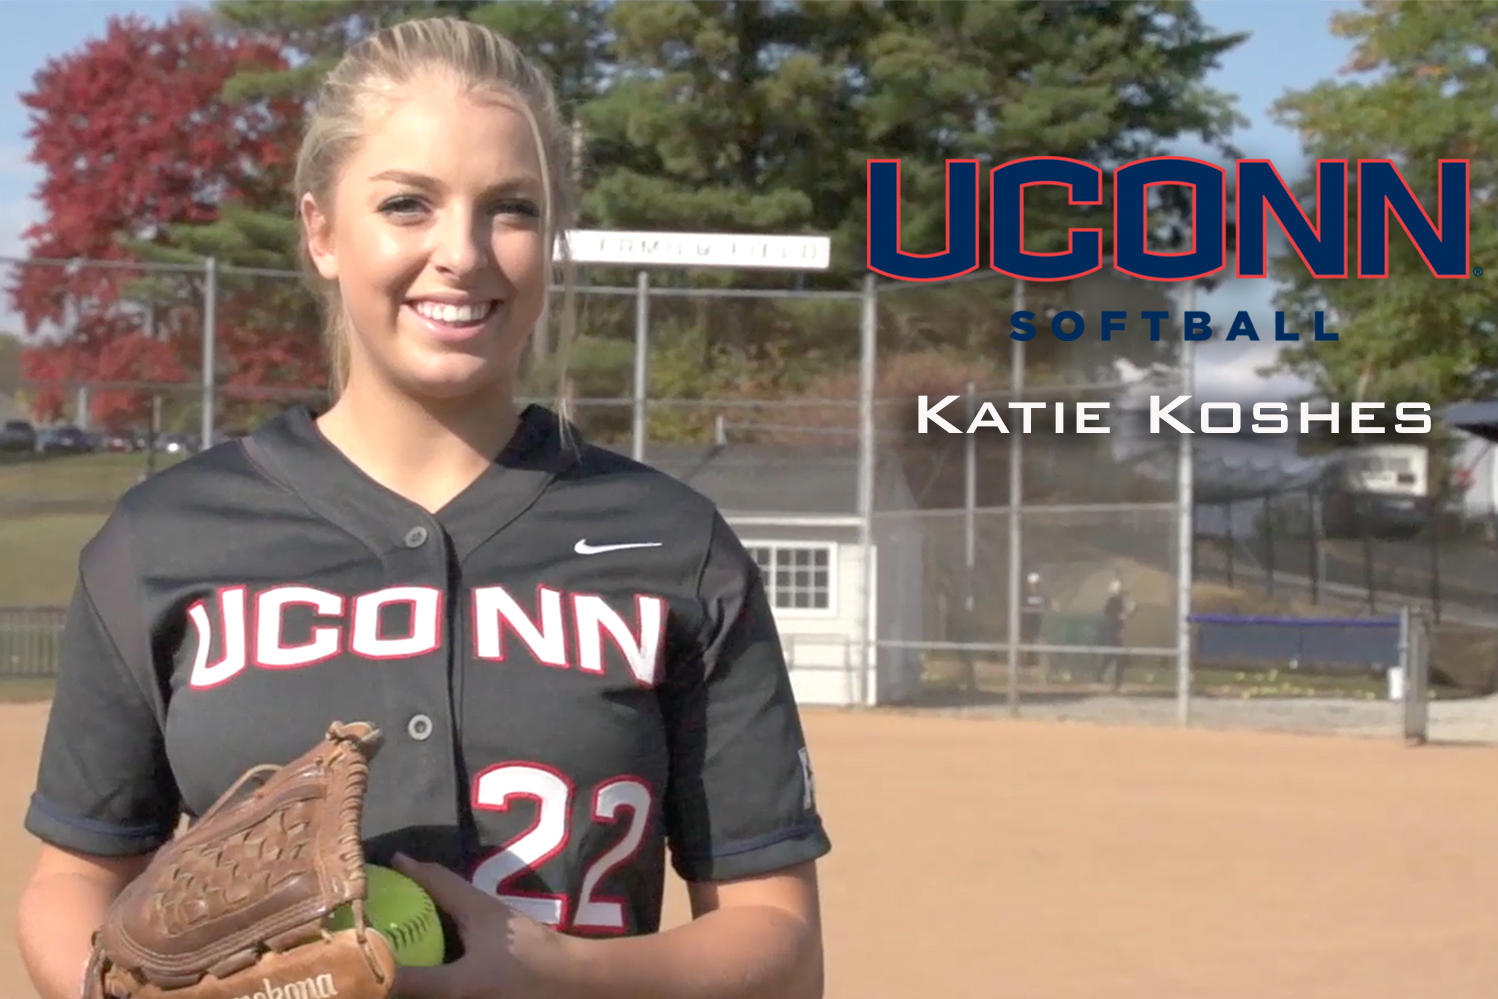 Katie Koshes, freshman softball pitcher. (Athletic Communications Photo)